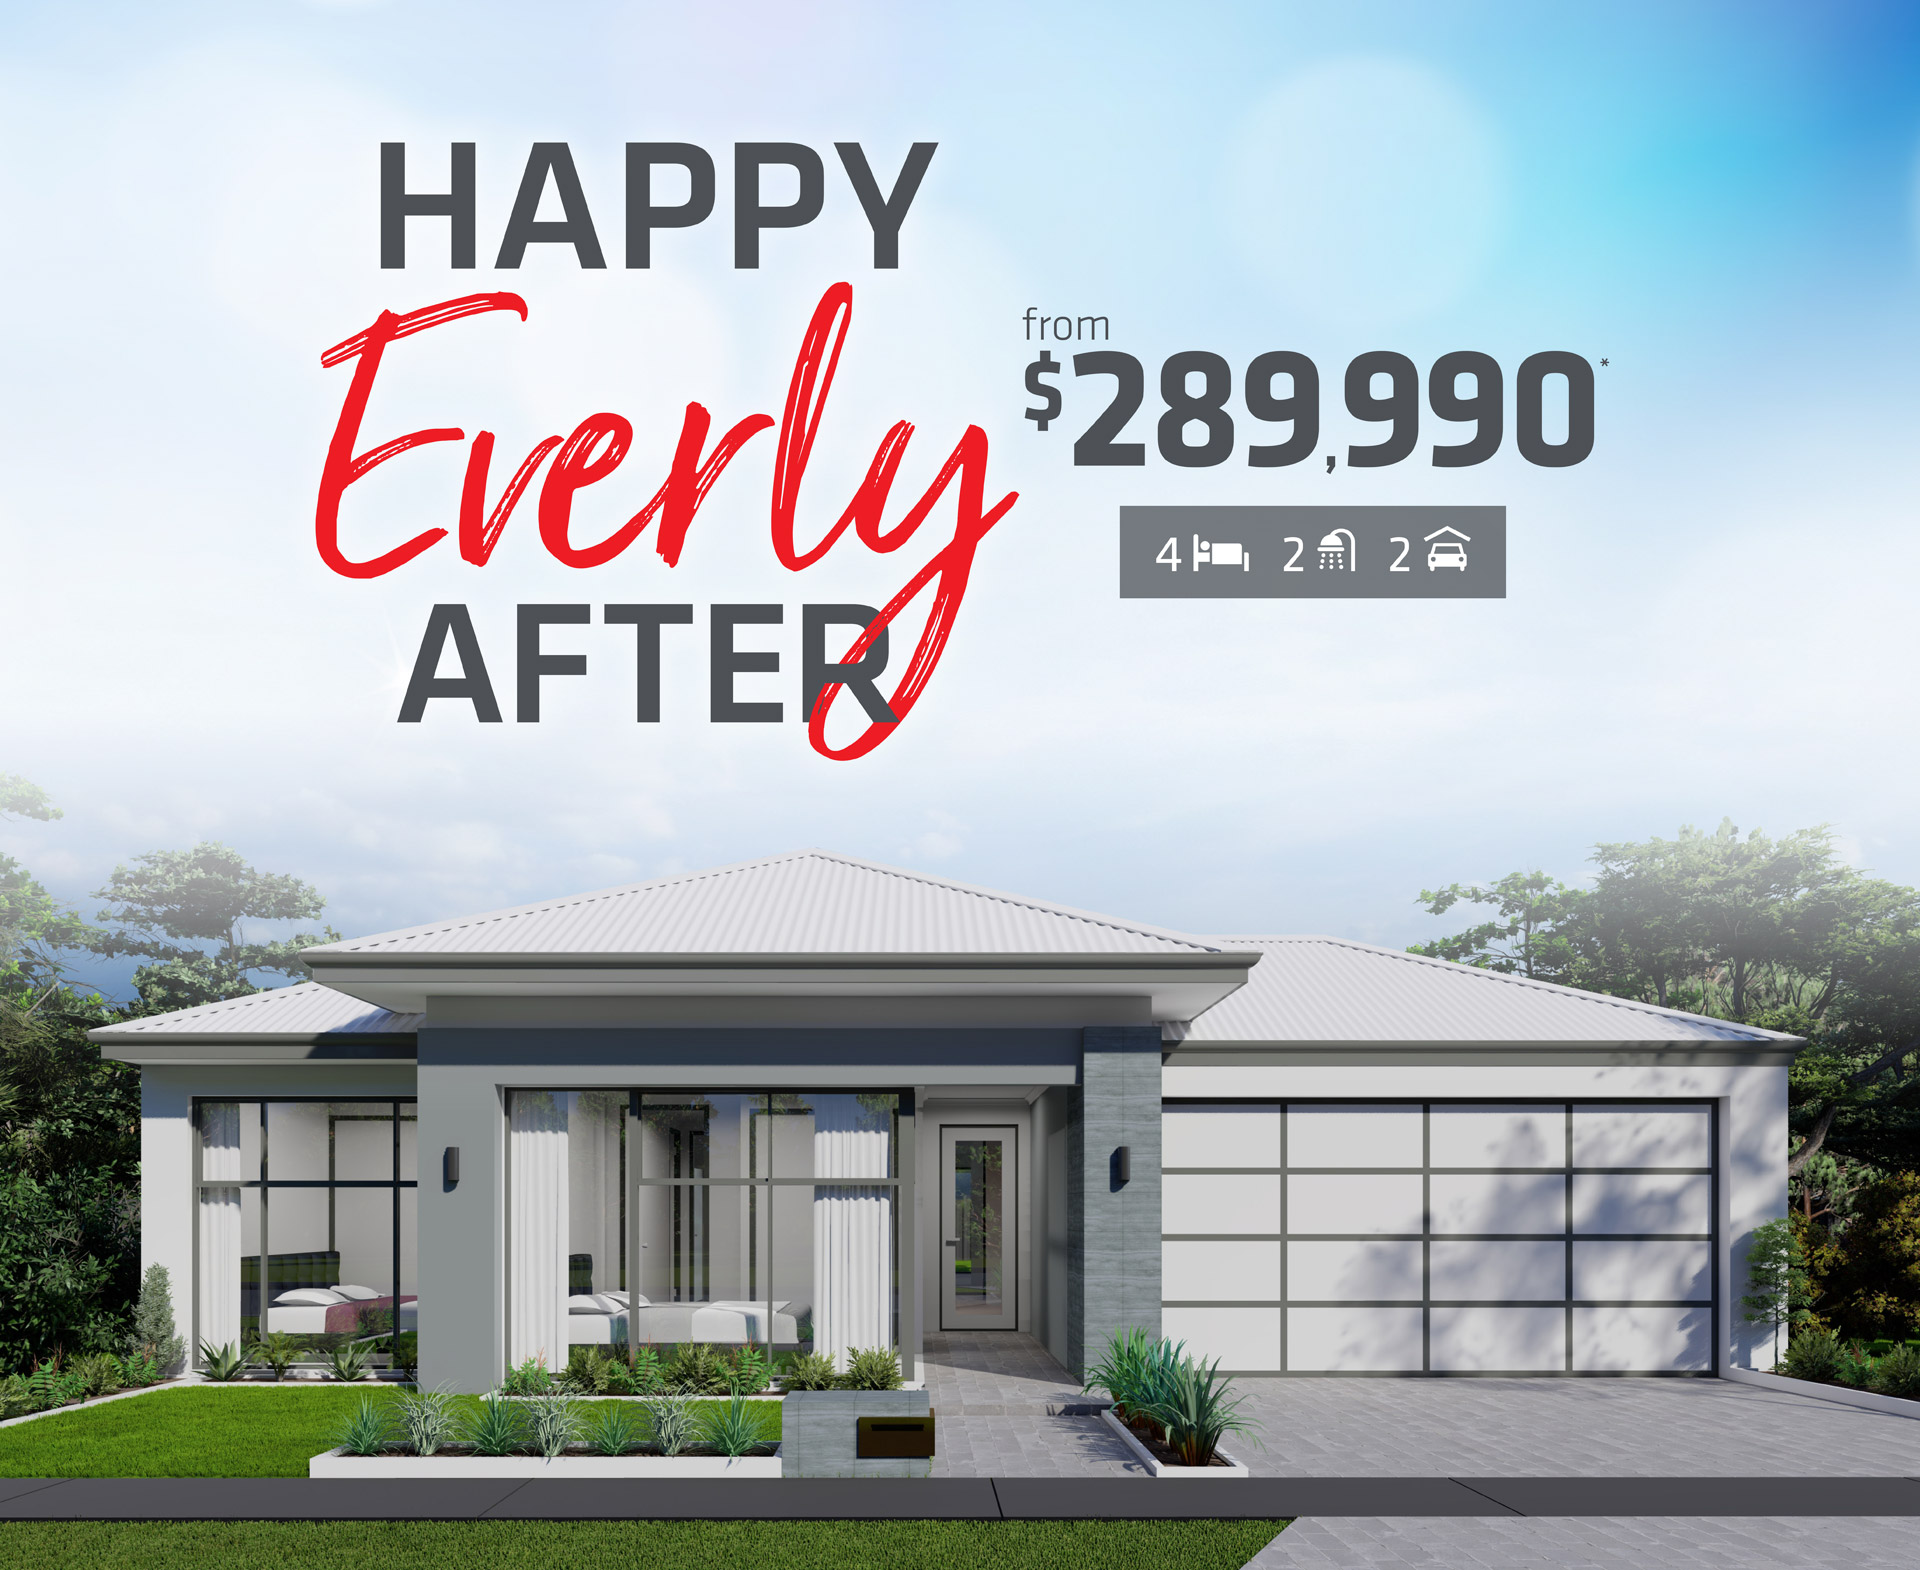 101 Residential Happy Everly After promotion banner